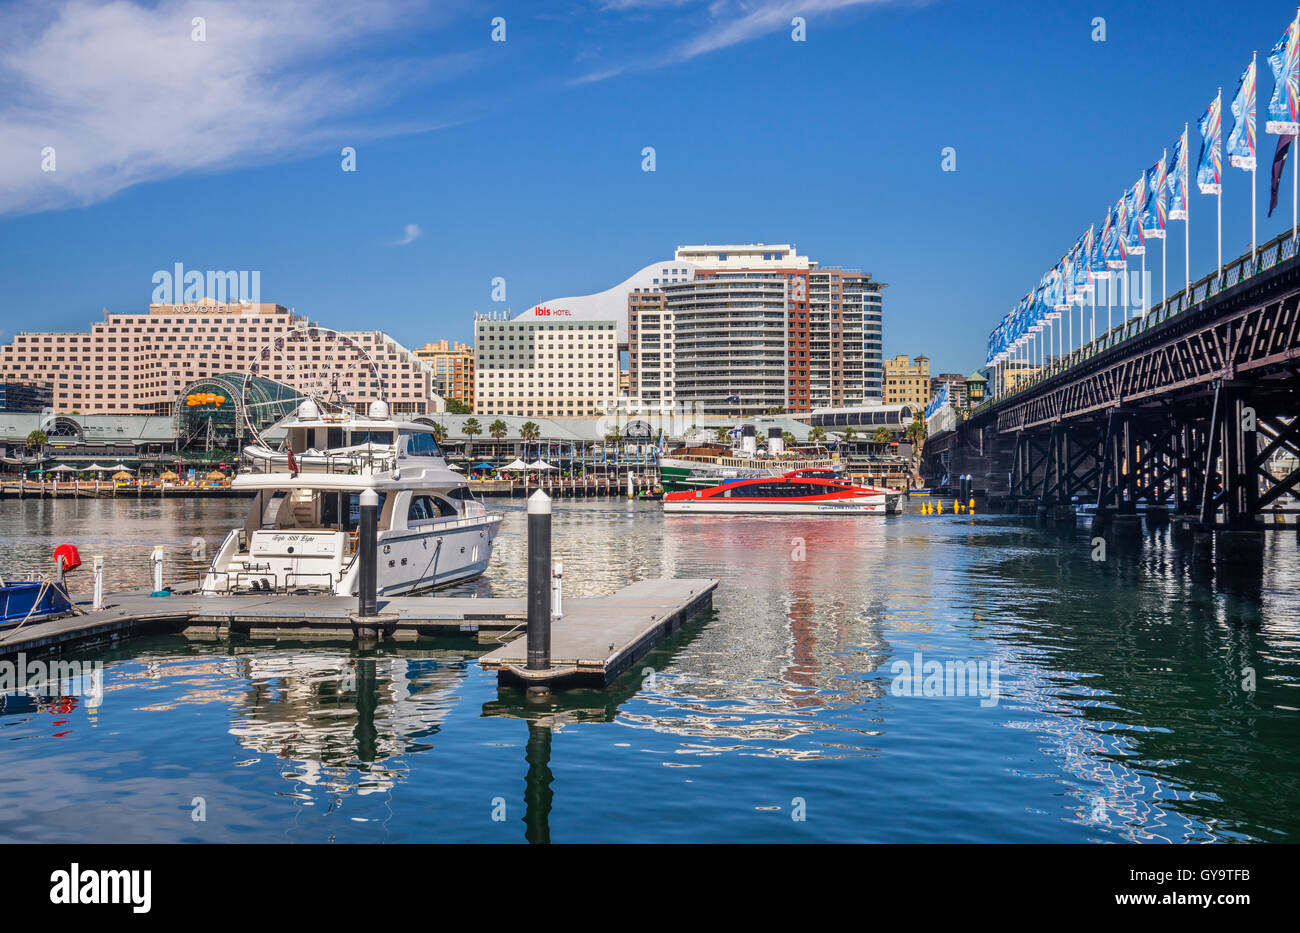 Australia, New South Wales, Sydney, Darling Harbour, view of the Harbourside complex and Pyrmont Bridge - Stock Image